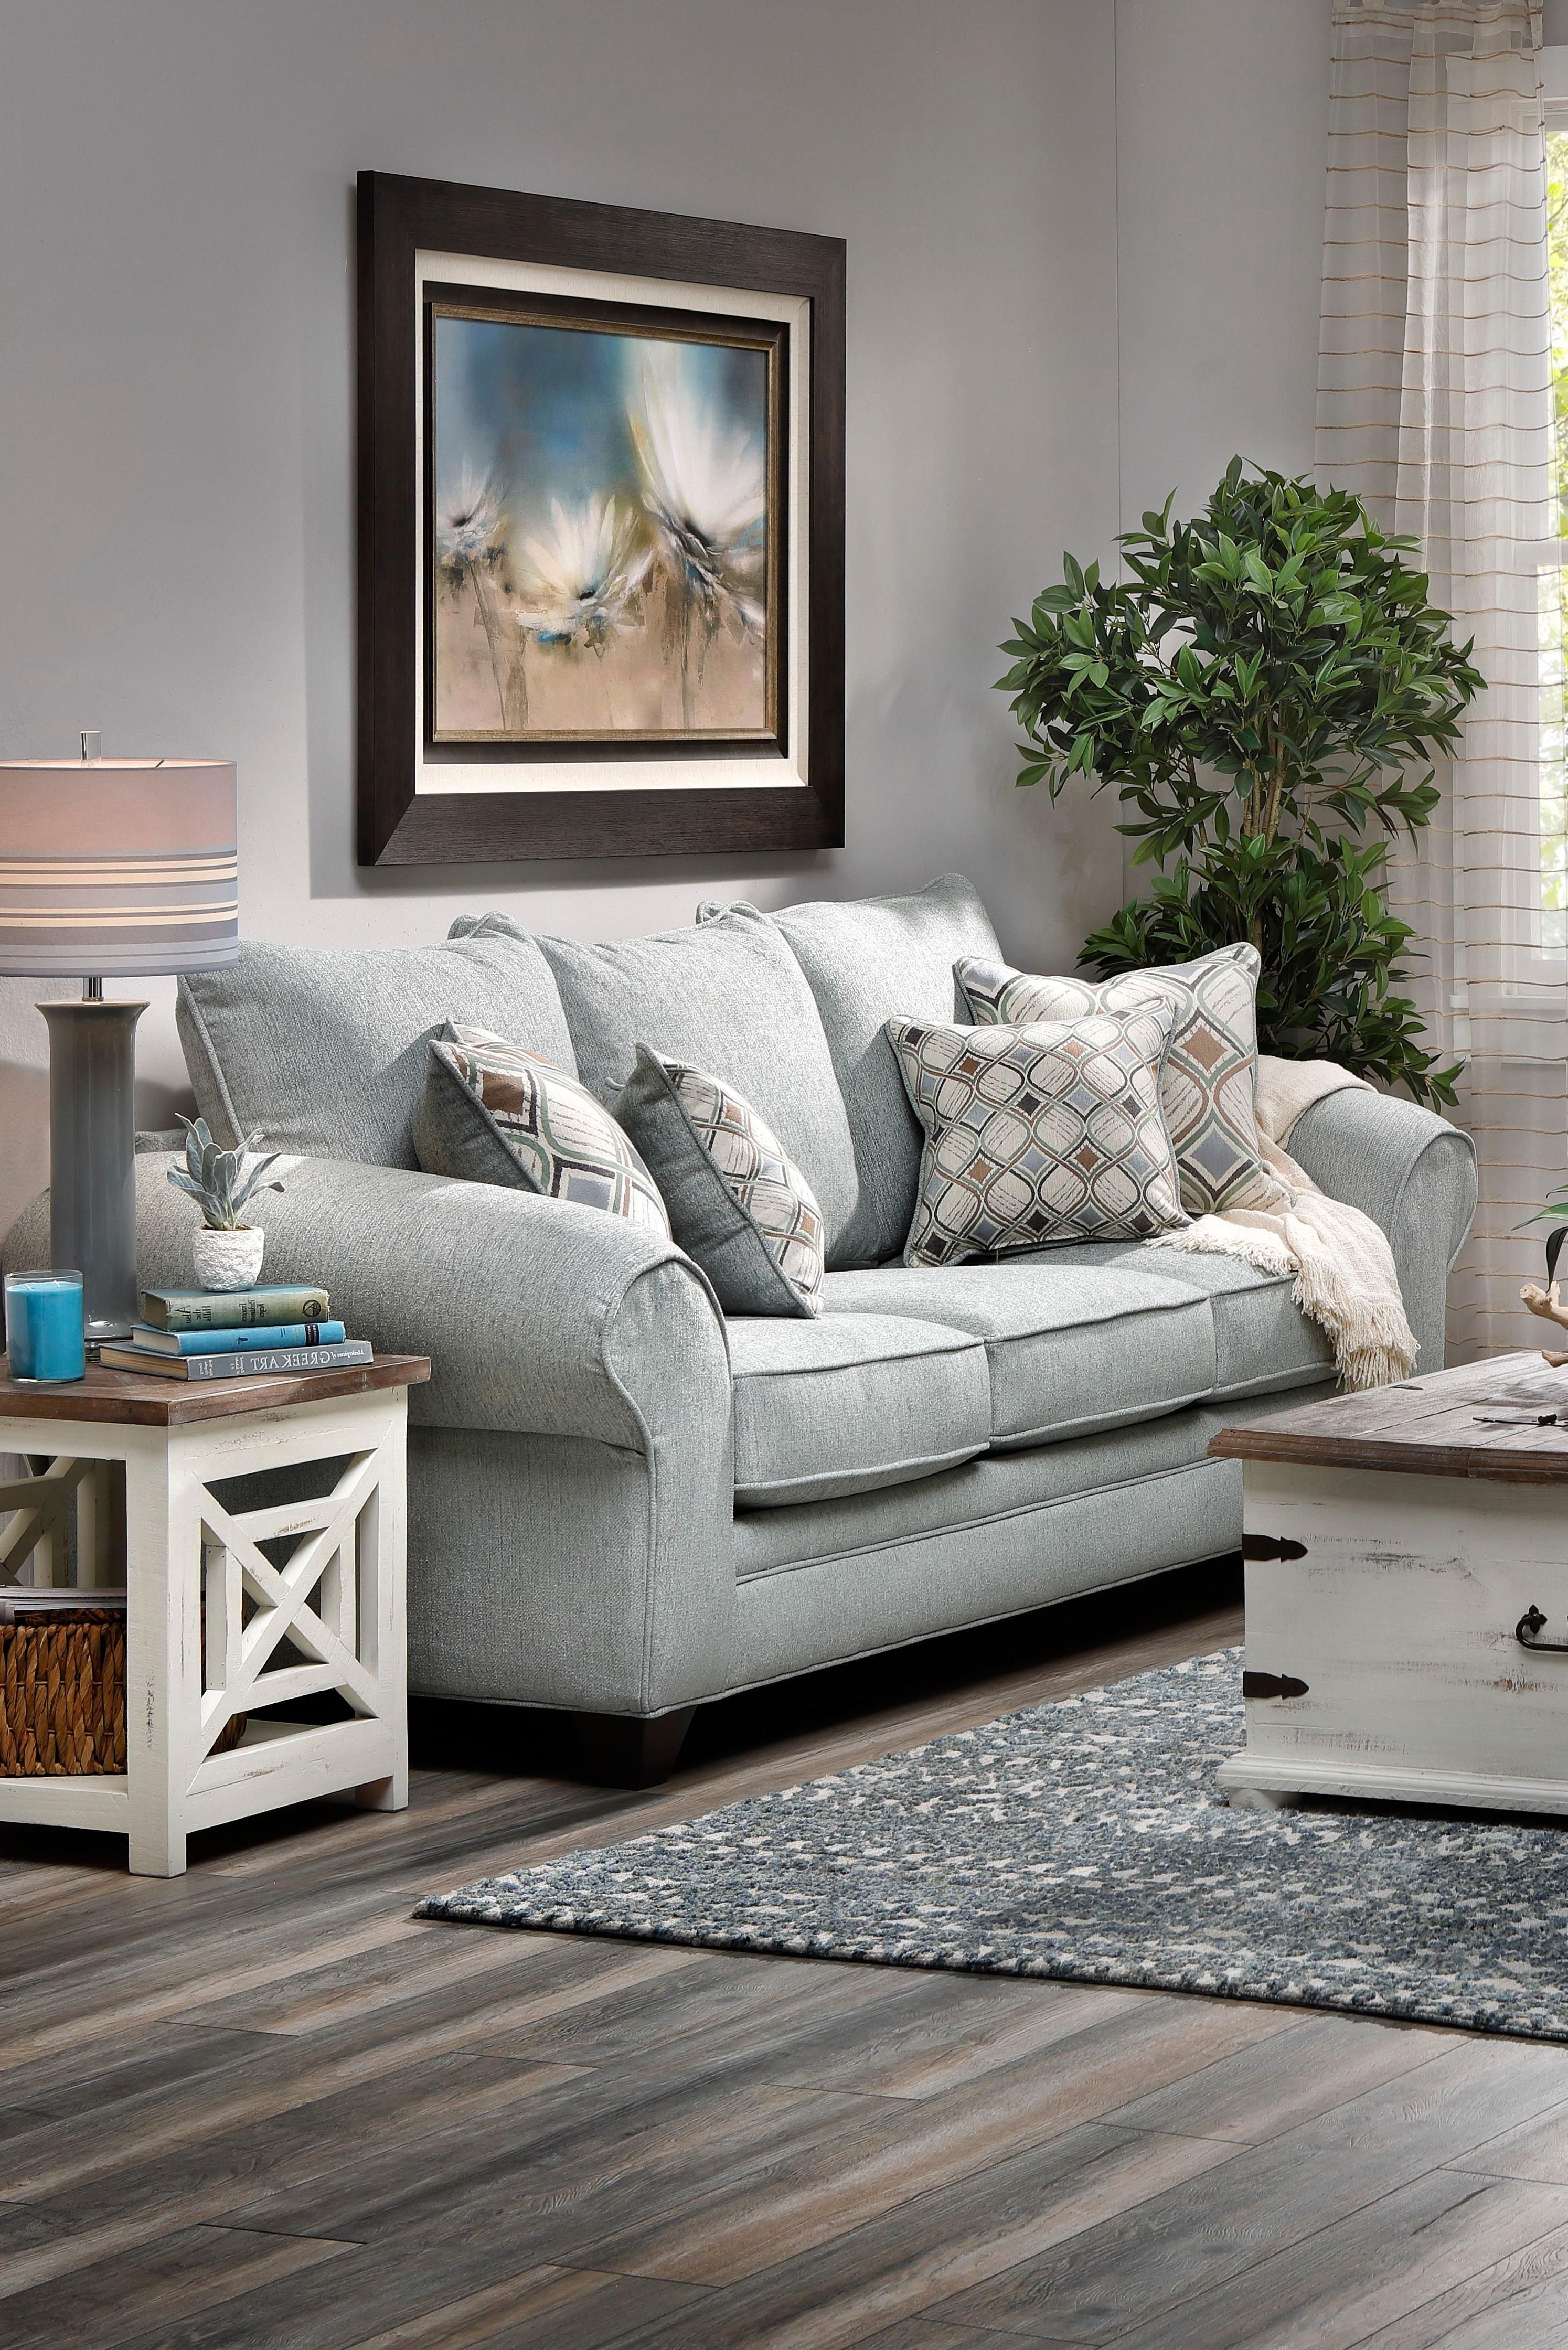 Unique Home Interior Skylar Sofa S Breezy Seating Offers Laidback Vibes In Your Choice Of Cream Or Light Teal Fab In 2020 Cheap Home Decor Rowe Furniture Round Ottoman